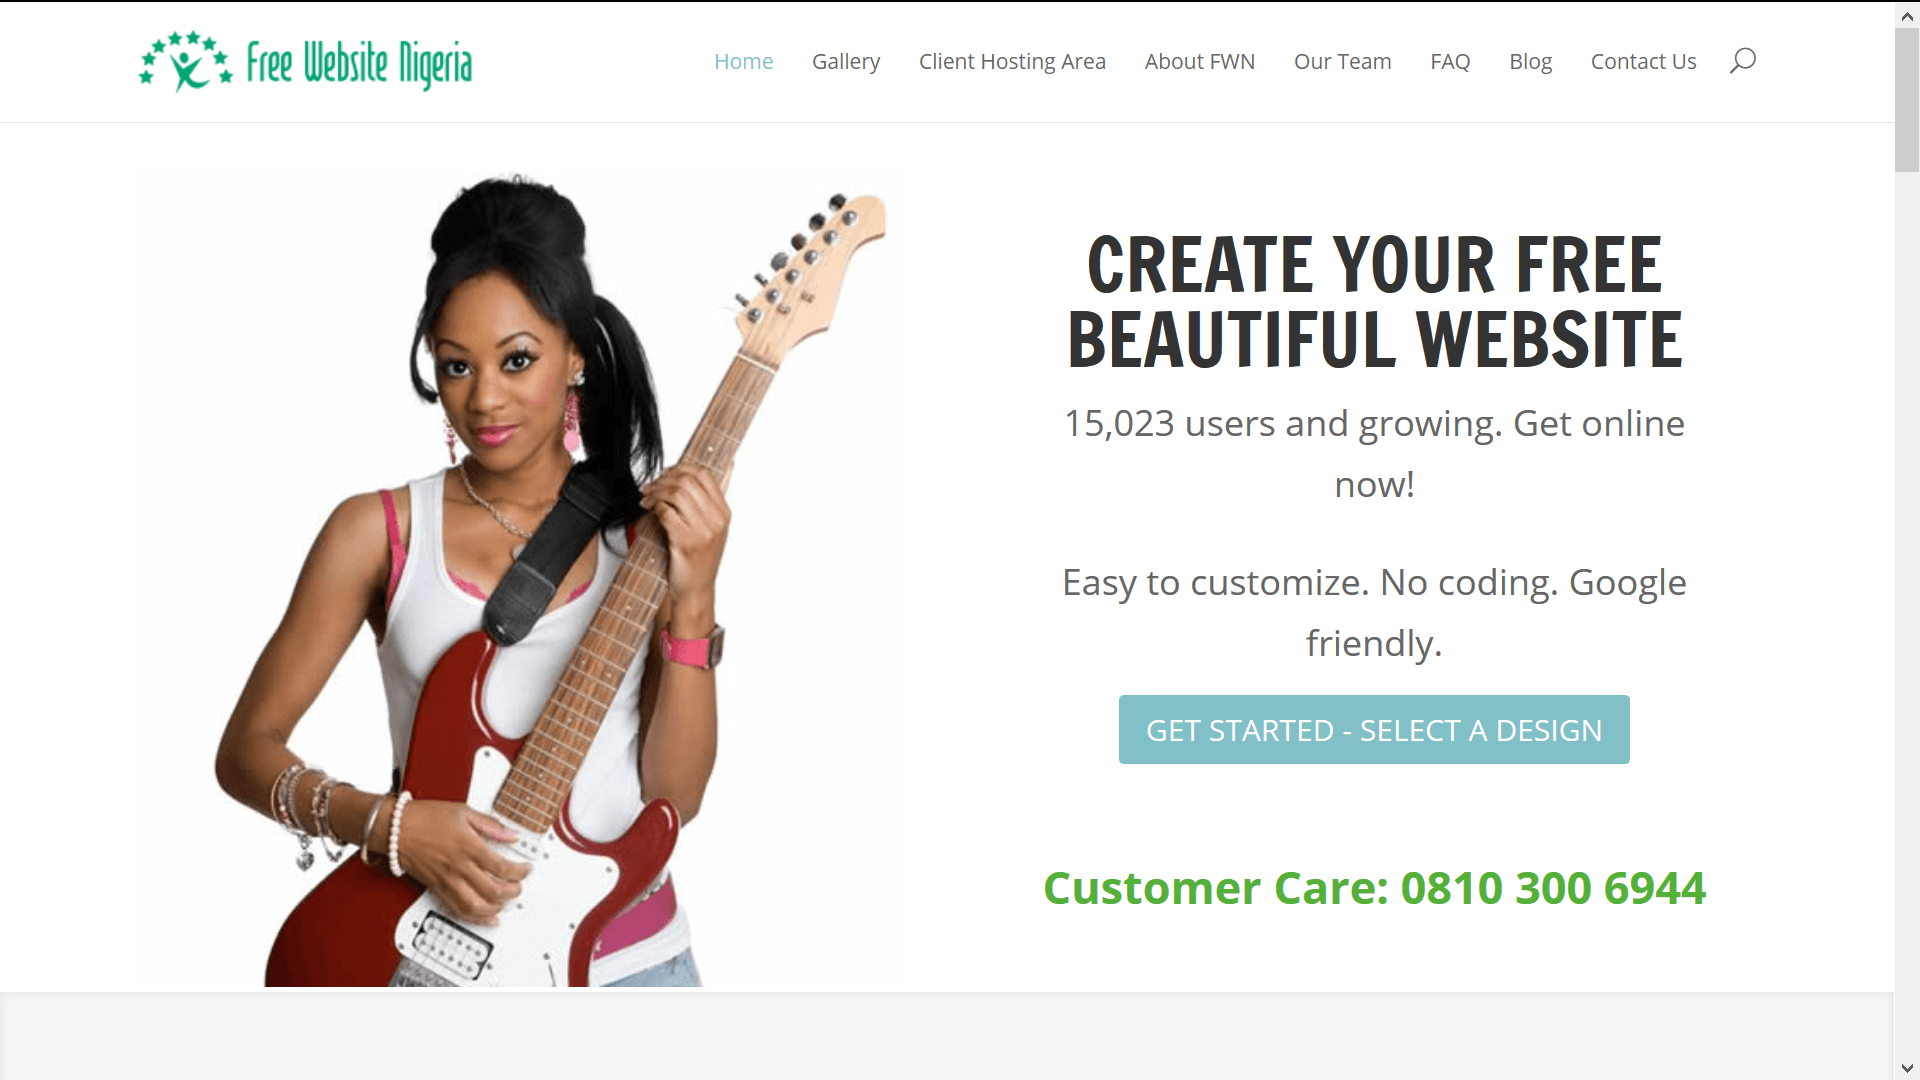 Free Website Nigeria